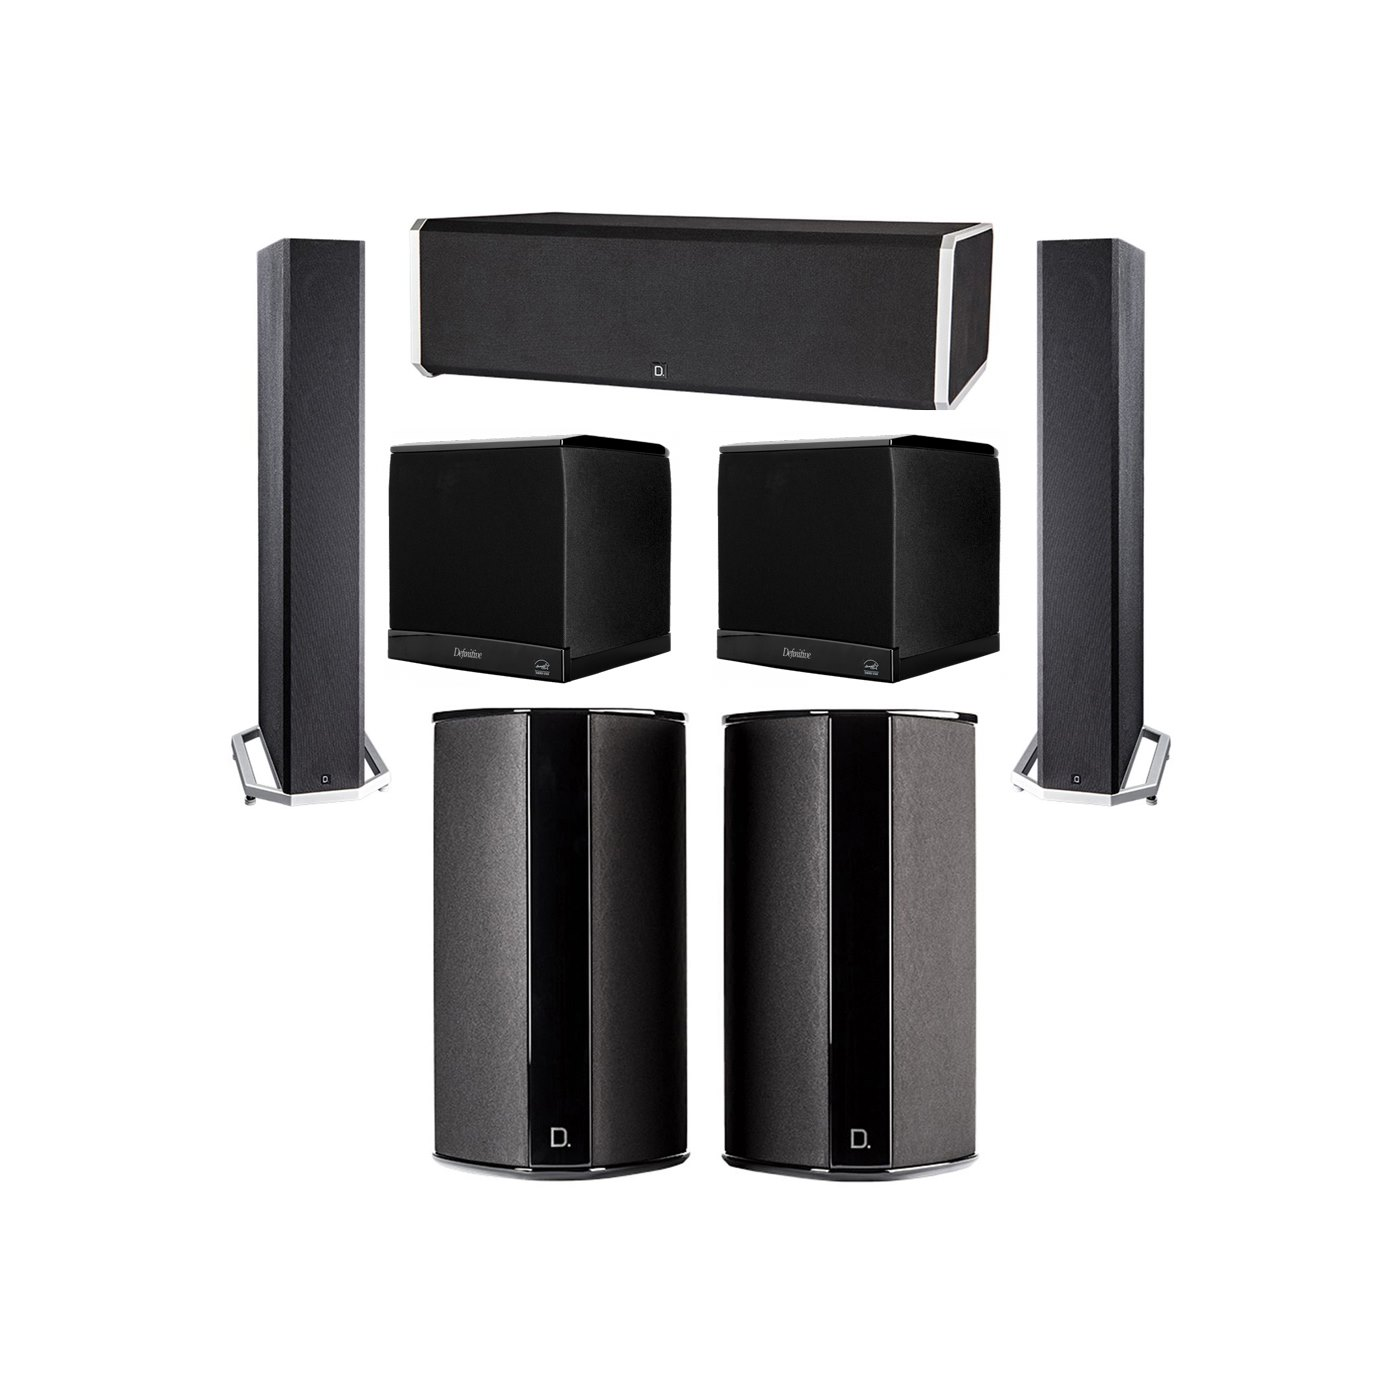 Definitive Technology 5.2 System with 2 BP9040 Tower Speakers, 1 CS9080 Center Channel Speaker, 2 SR9080 Surround Speaker, 2 Definitive Technology SuperCube 4000 Powered Subwoofer